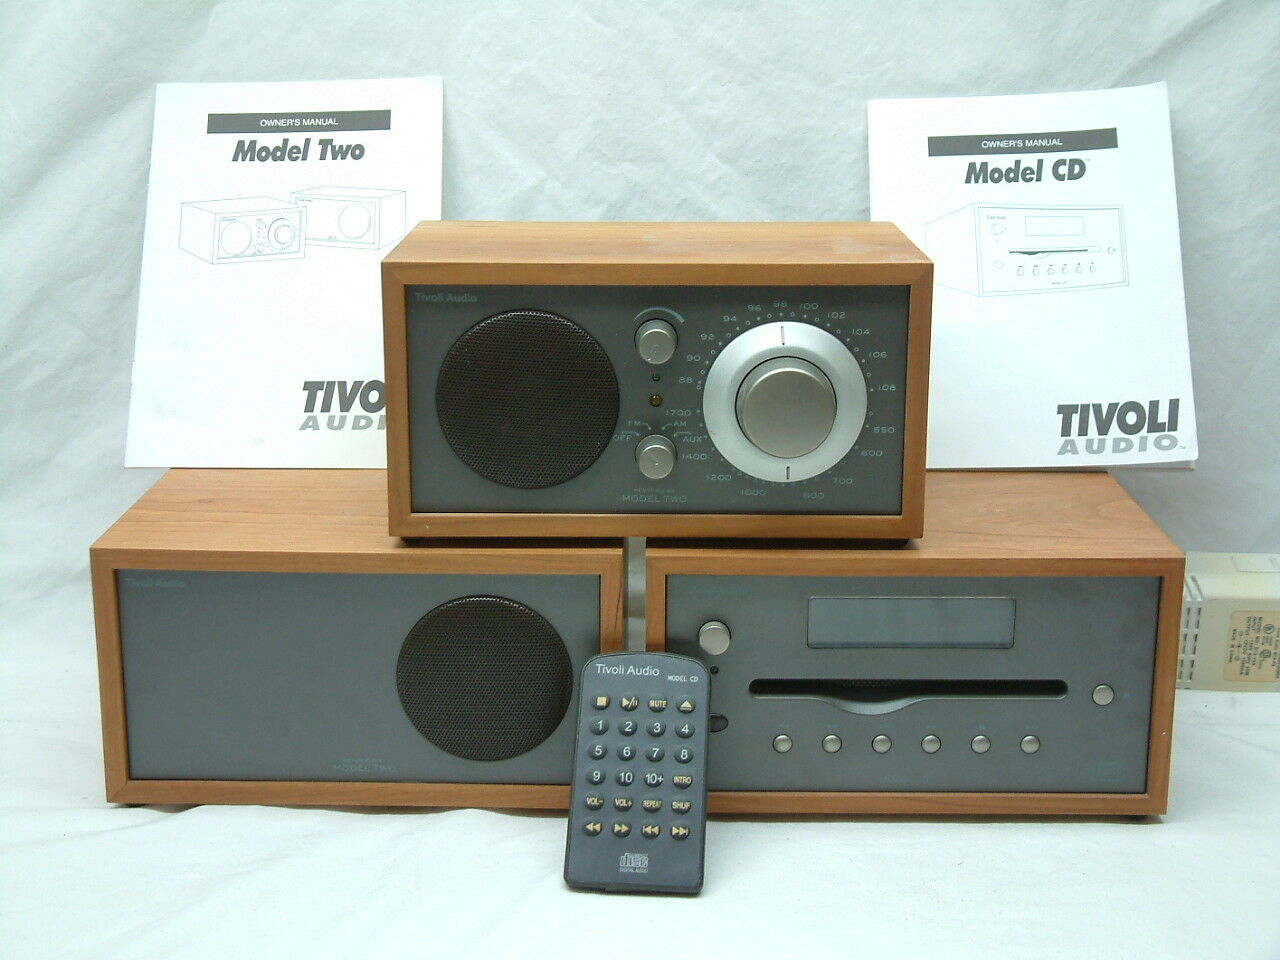 tivoli audio henry kloss am fm radio model two system cd. Black Bedroom Furniture Sets. Home Design Ideas